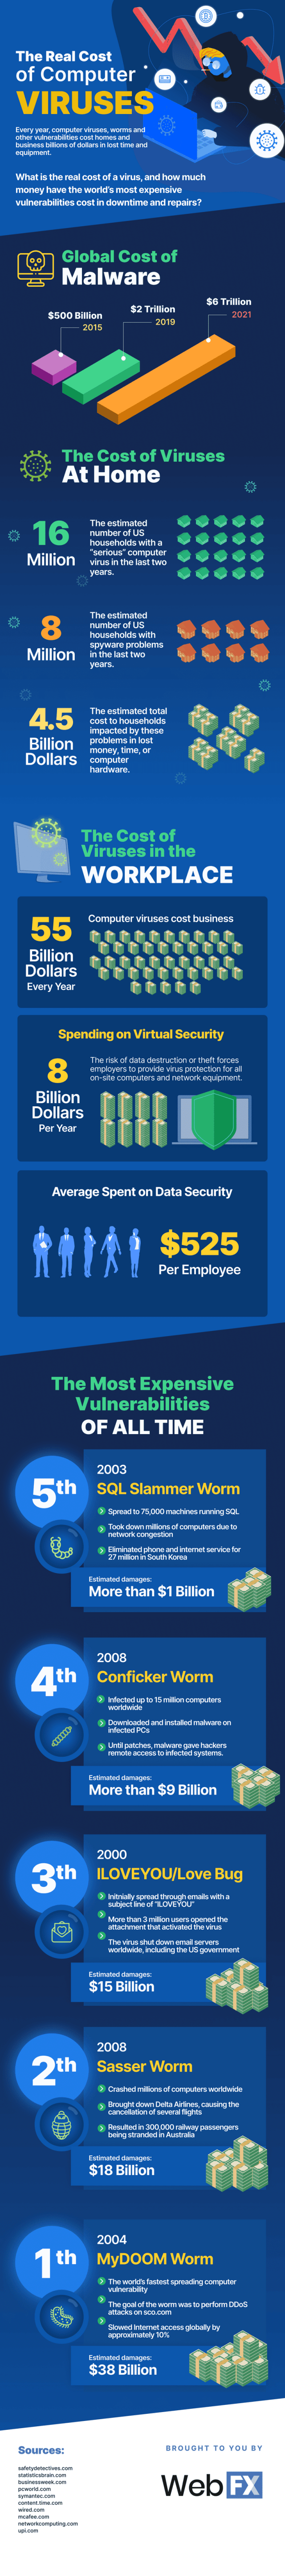 The Real Cost Of Computer Viruses